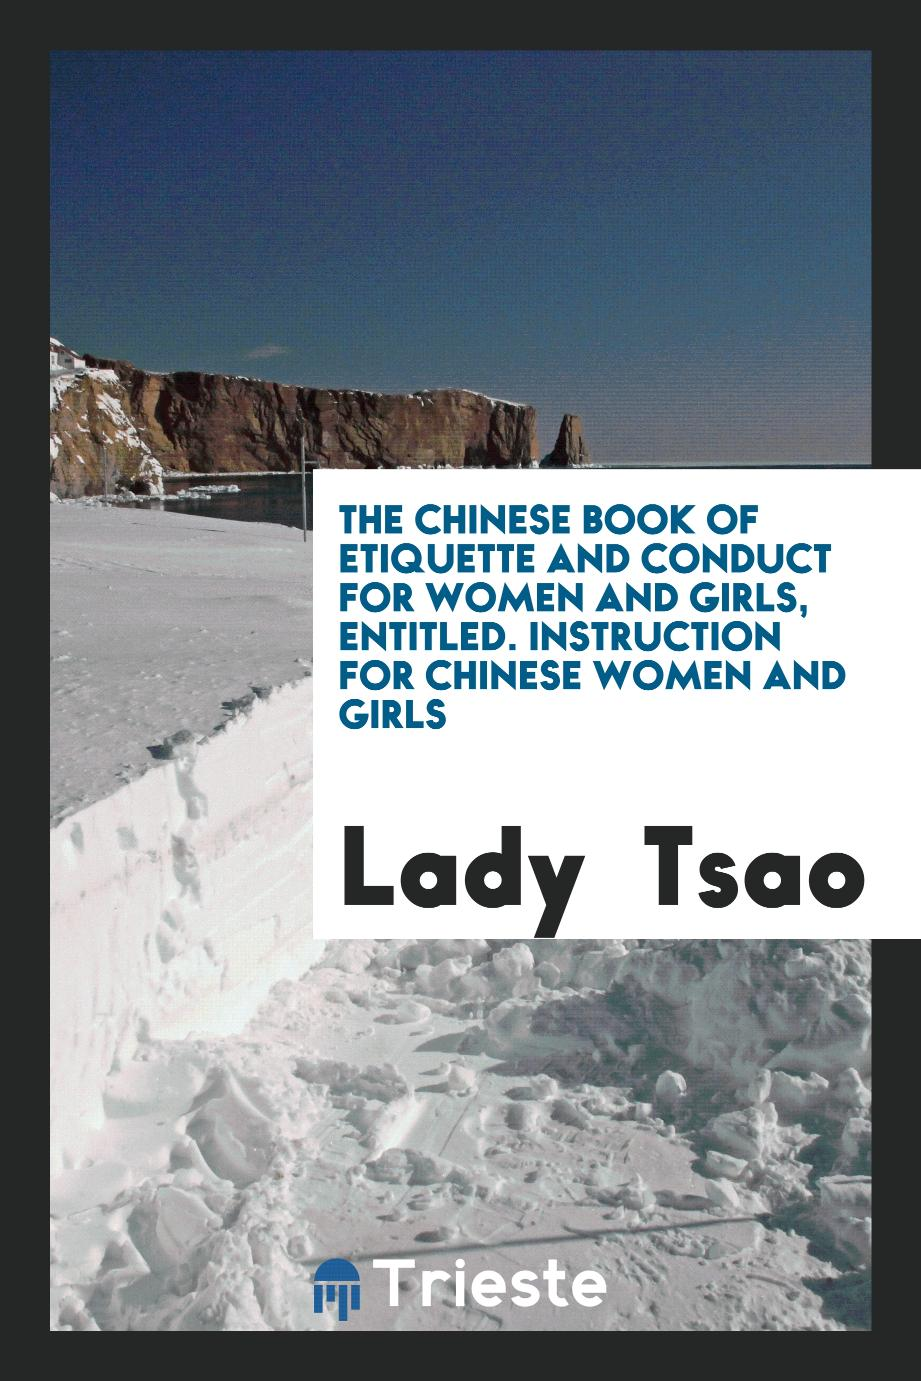 The Chinese Book of Etiquette and Conduct for Women and Girls, Entitled. Instruction for Chinese women and girls